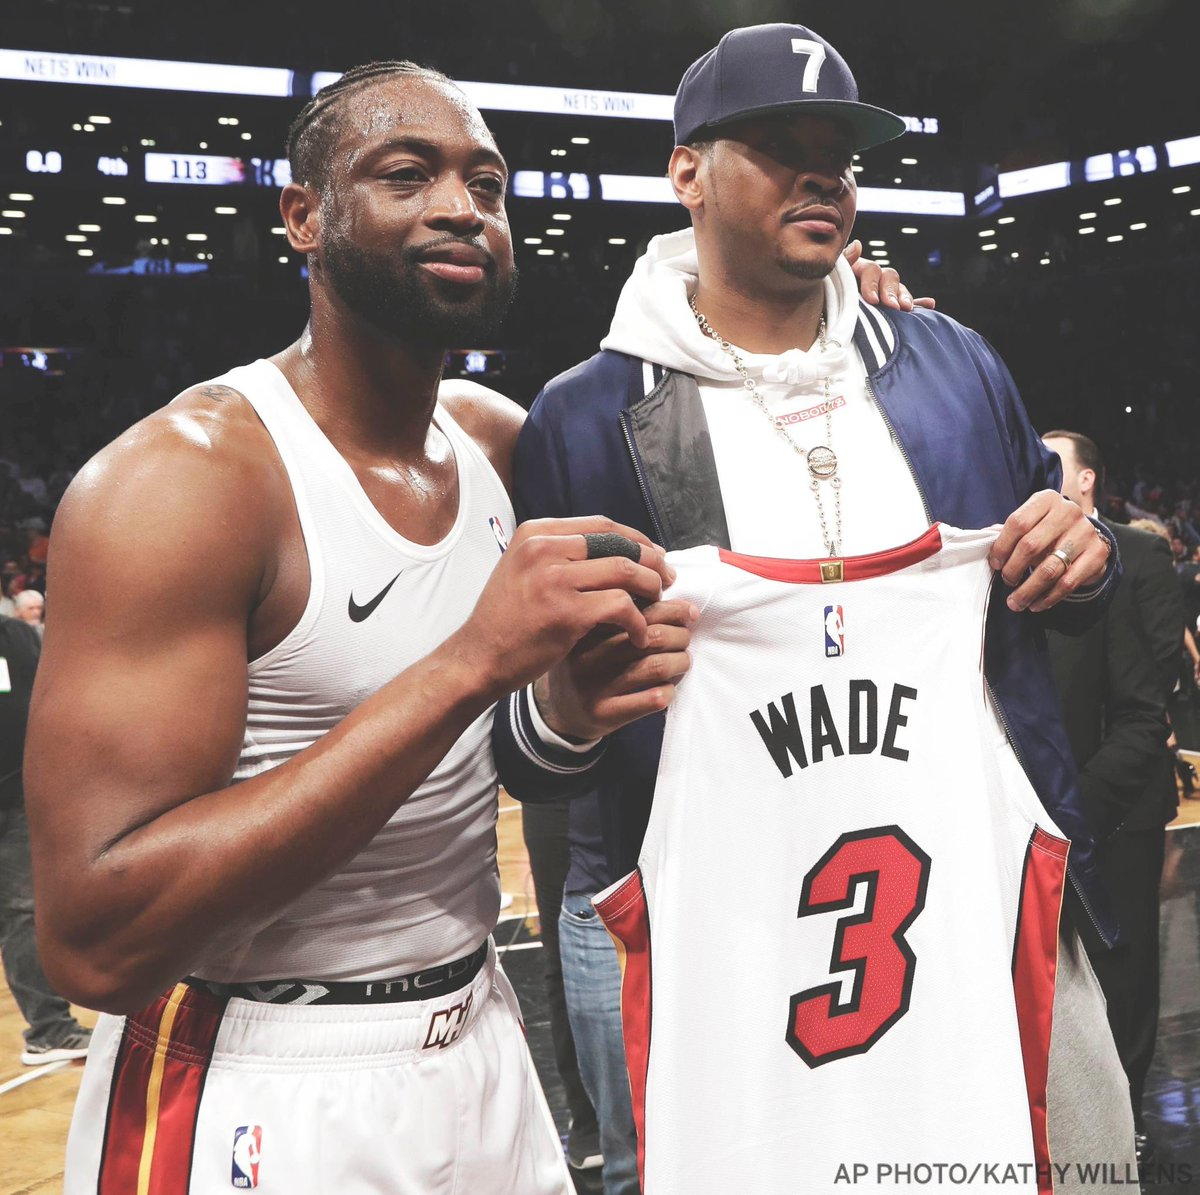 Congrats to my brother @DwyaneWade on an incredible career. #BiggerThanBasketball #OneLastDance #STAYME7O 📸: @espn